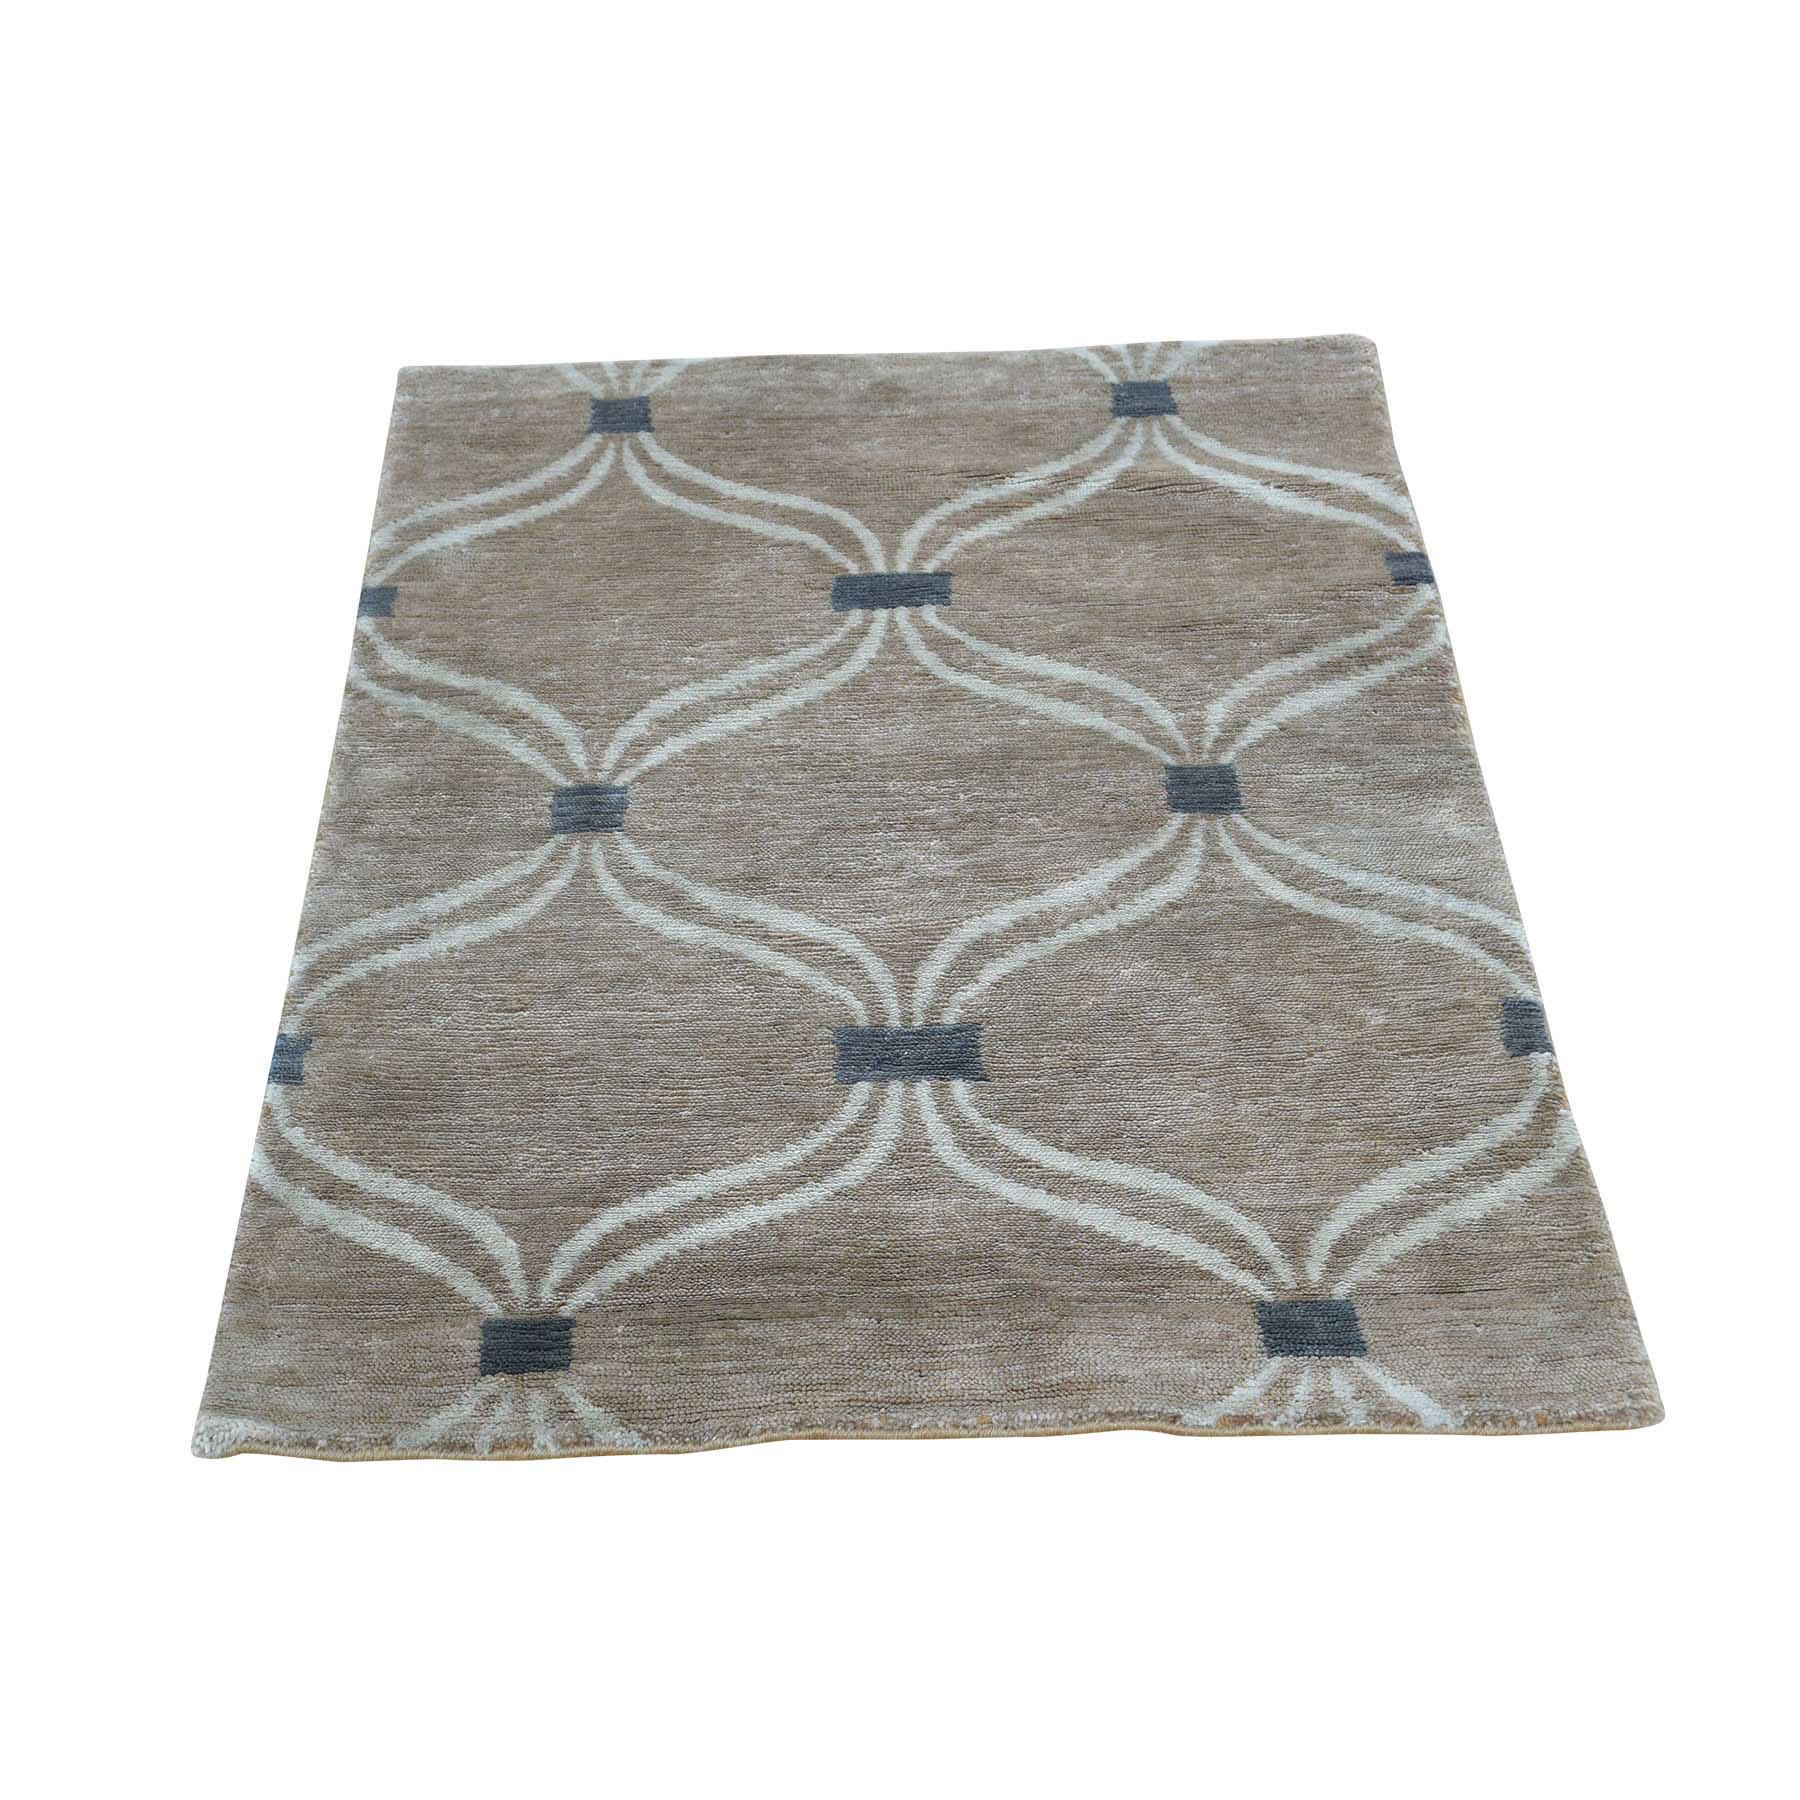 2'X3' Hand-Knotted Wool And Silk Modern Design Taupe Oriental Rug moacd9d7